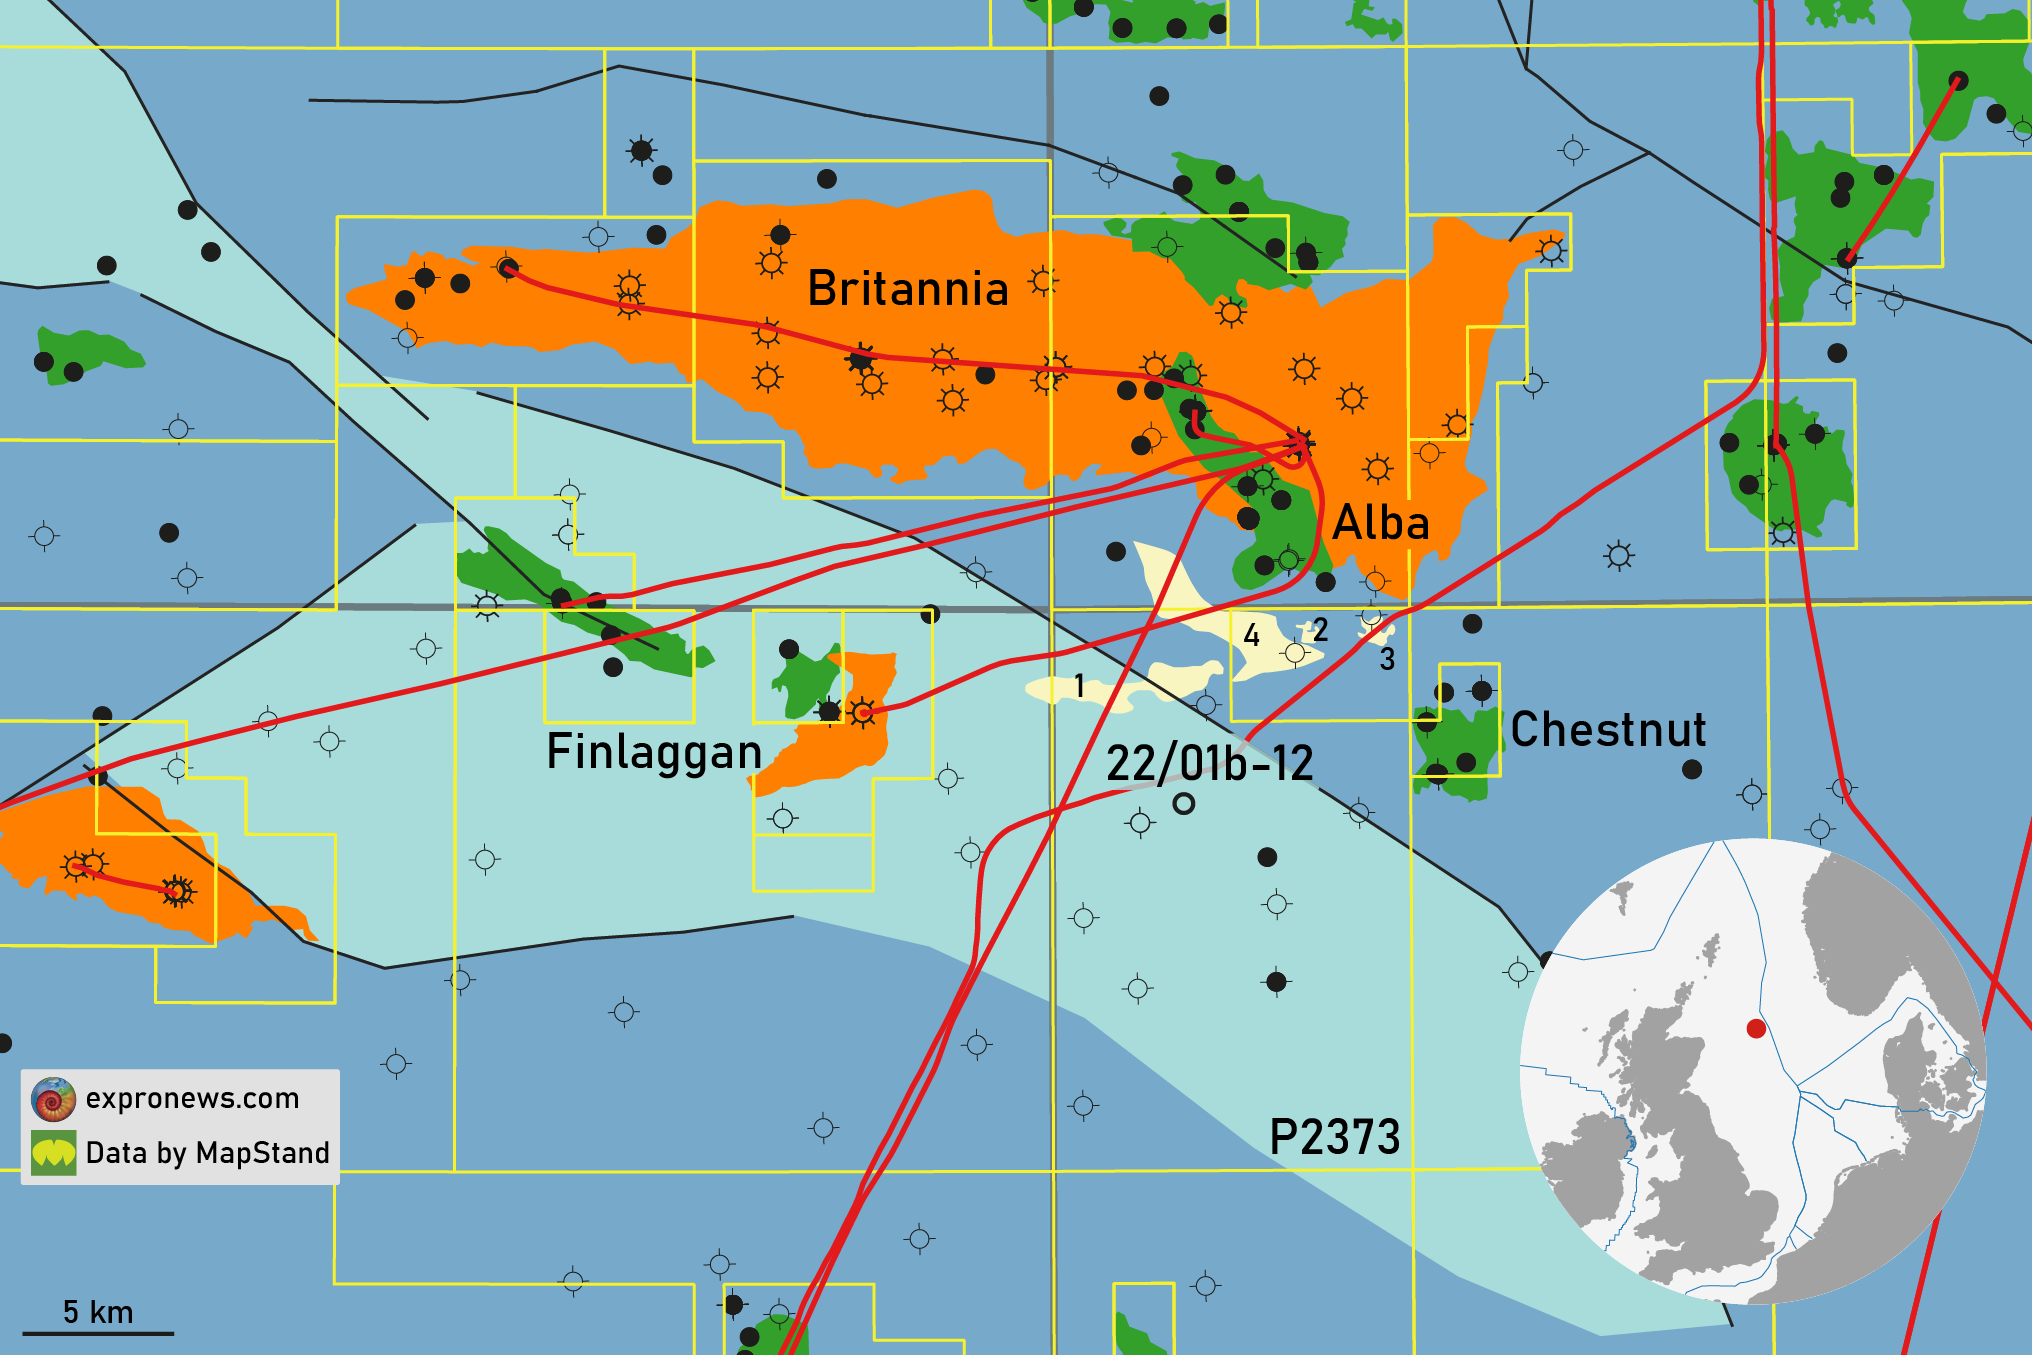 Ithaca Energy drills second UKCS exploration well of 2021